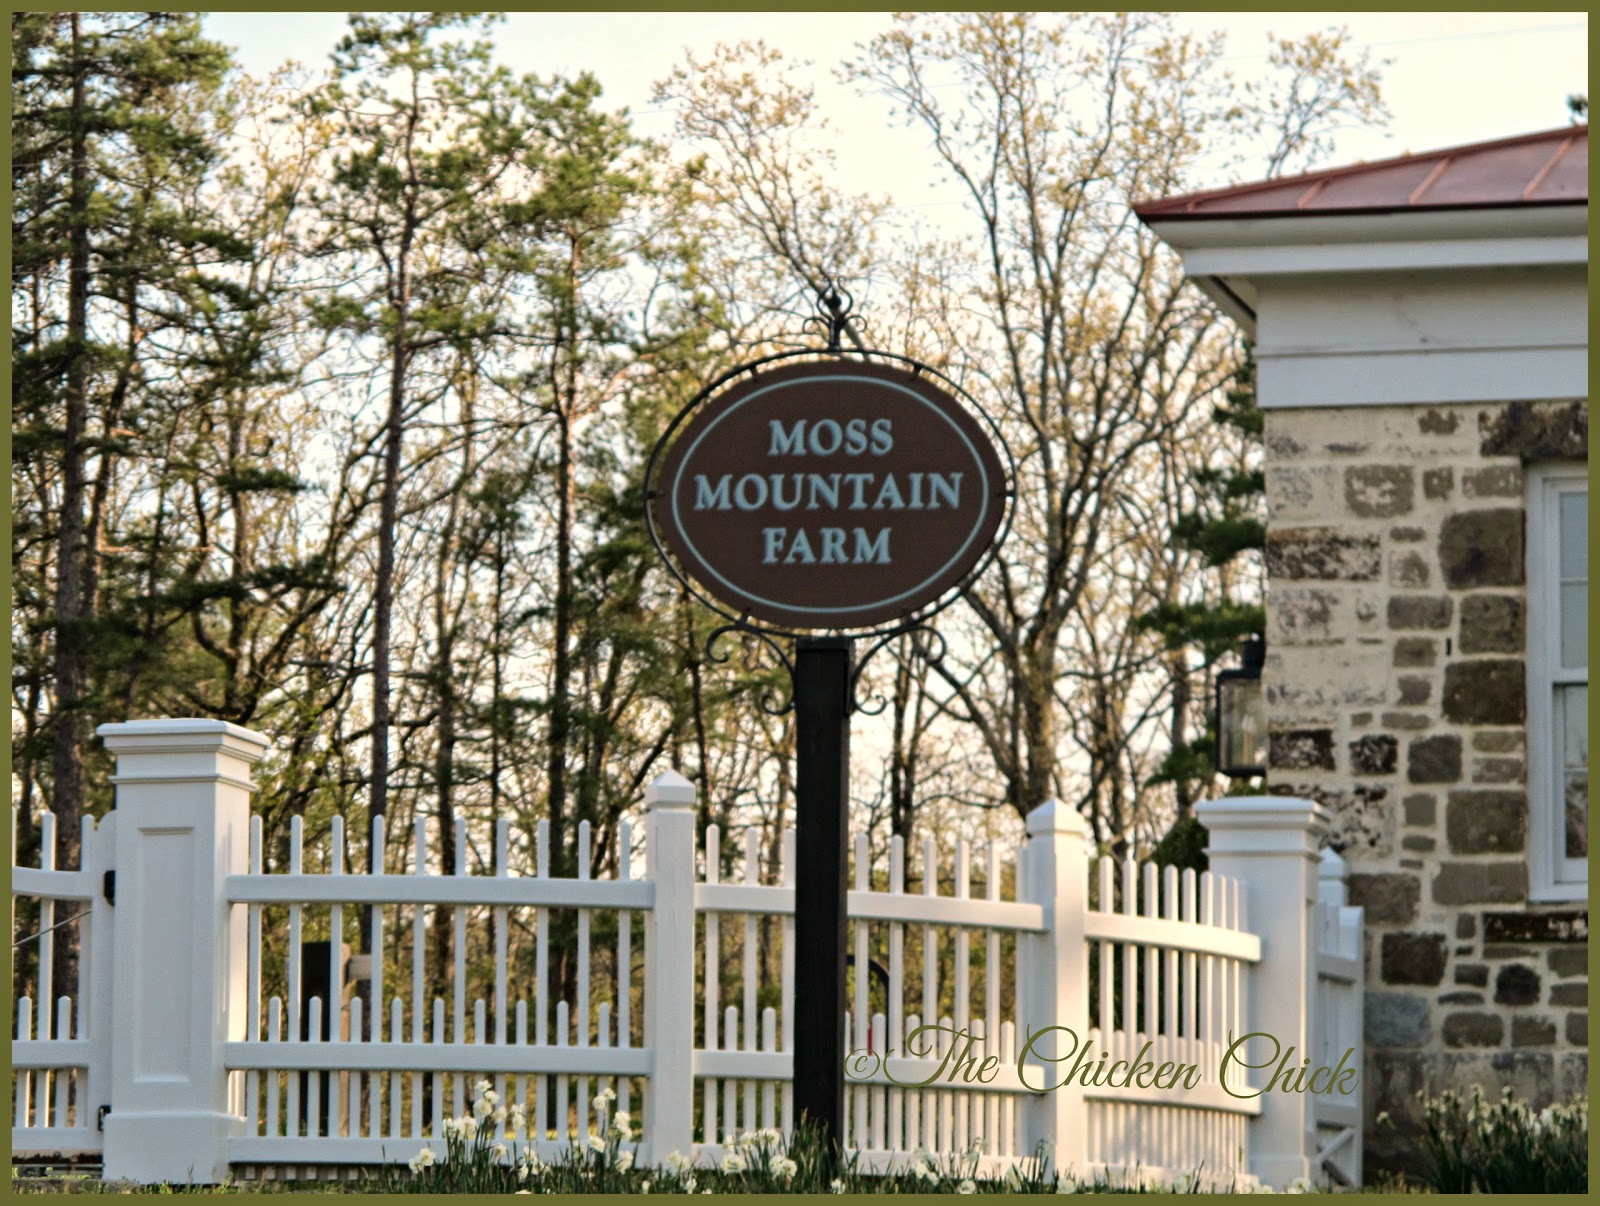 The front gate at P. Allen Smith's Moss Mountain Farm & Garden Home Retreat